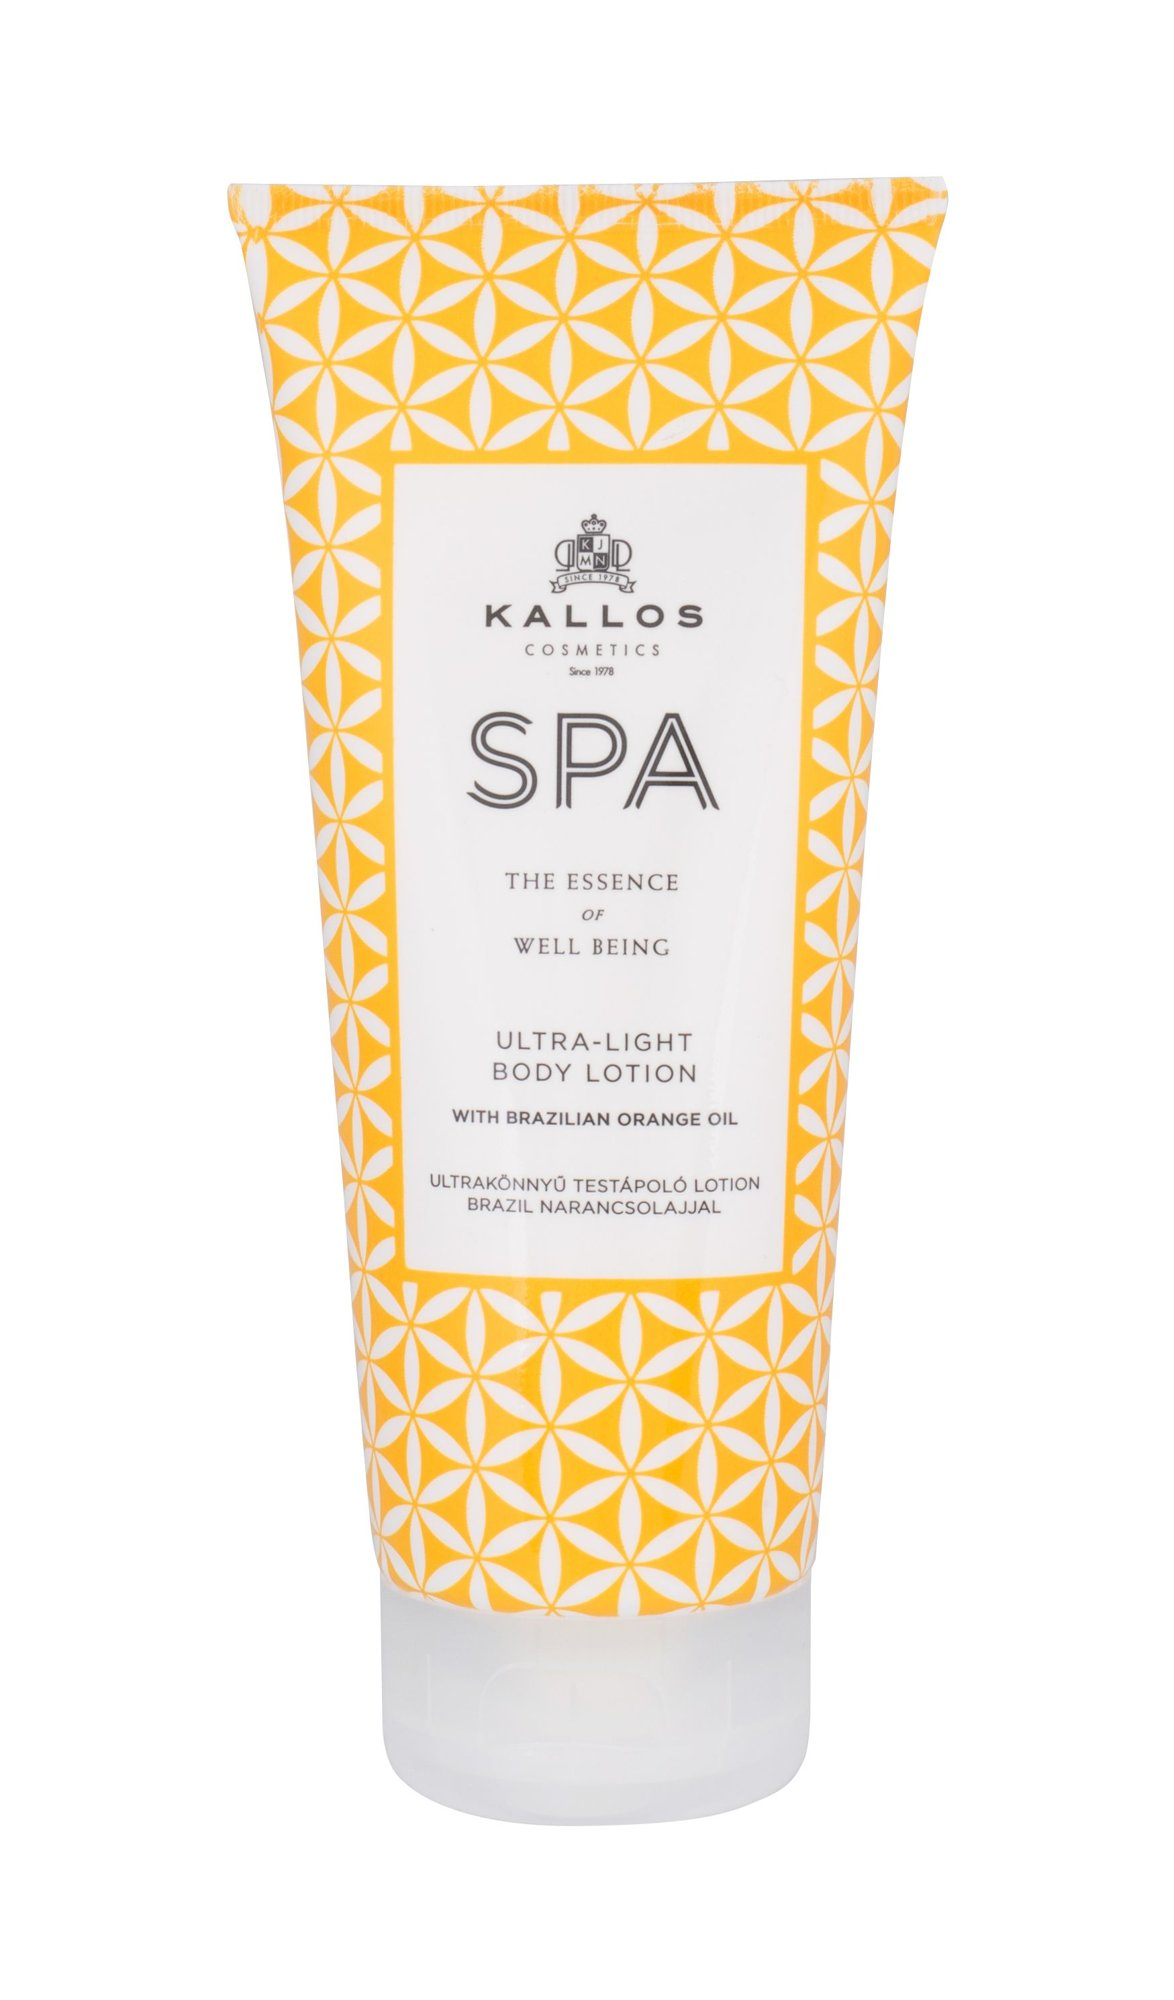 Kallos Cosmetics SPA Ultra-Light Body Lotion